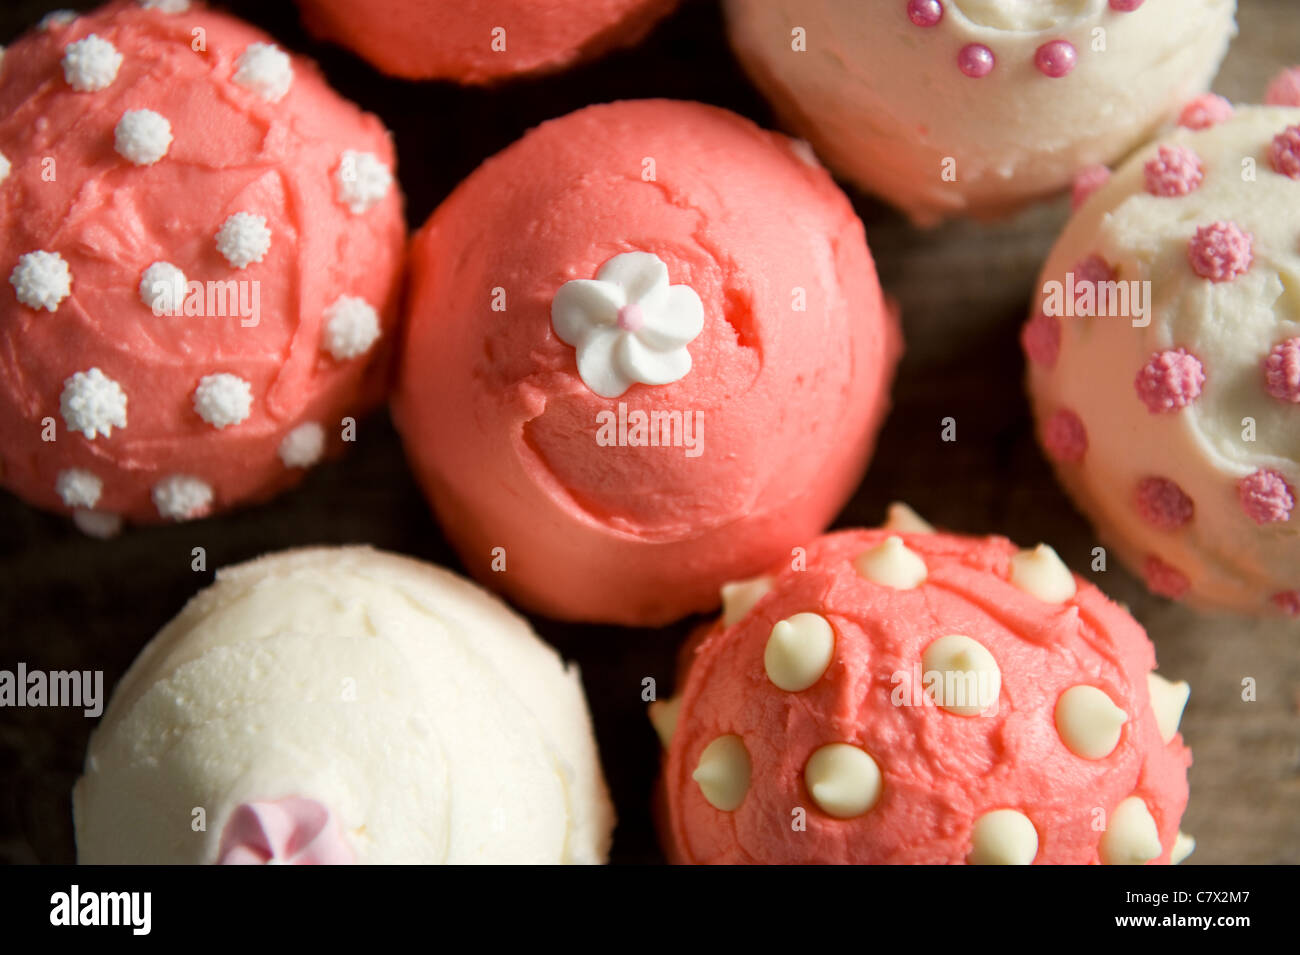 cupcakes frosted pink and white in various patterns on a cake plate back lit - Stock Image